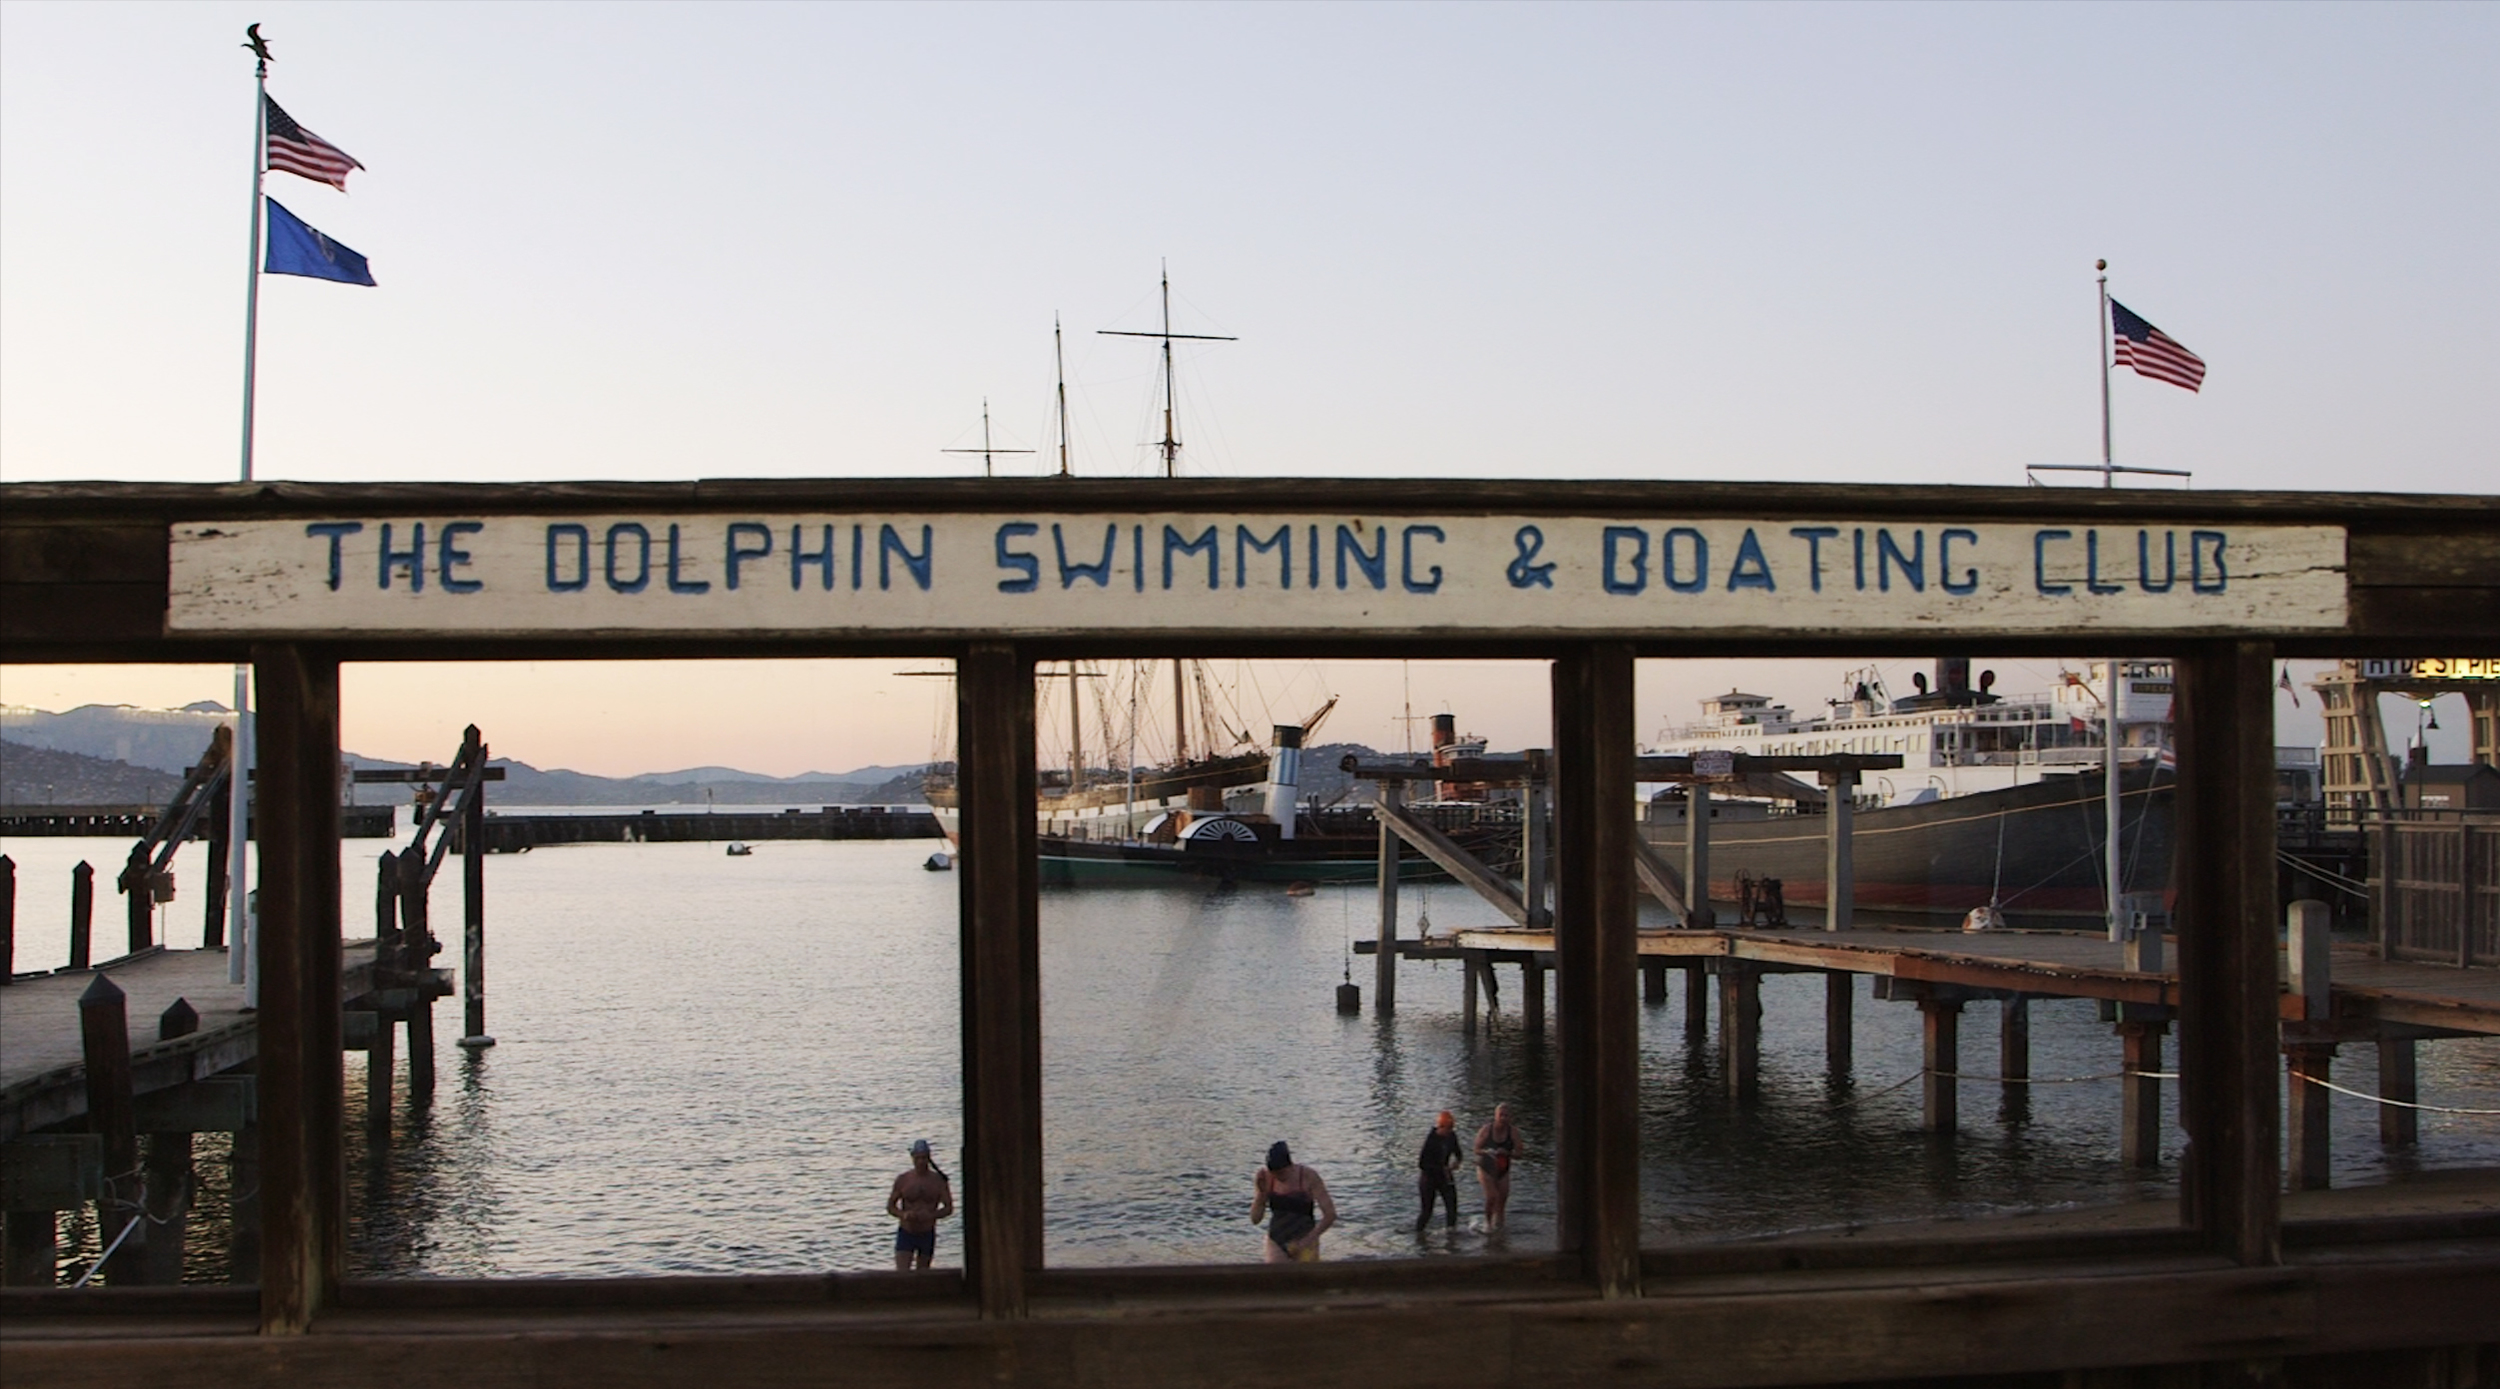 Founded in 1877, the Dolphin Club is a public-access organization whose members swim in the waters of Aquatic Park, row in the Bay and on Lake Merced, play in handball tournaments and participate in the annual Escape from Alcatraz triathlon.